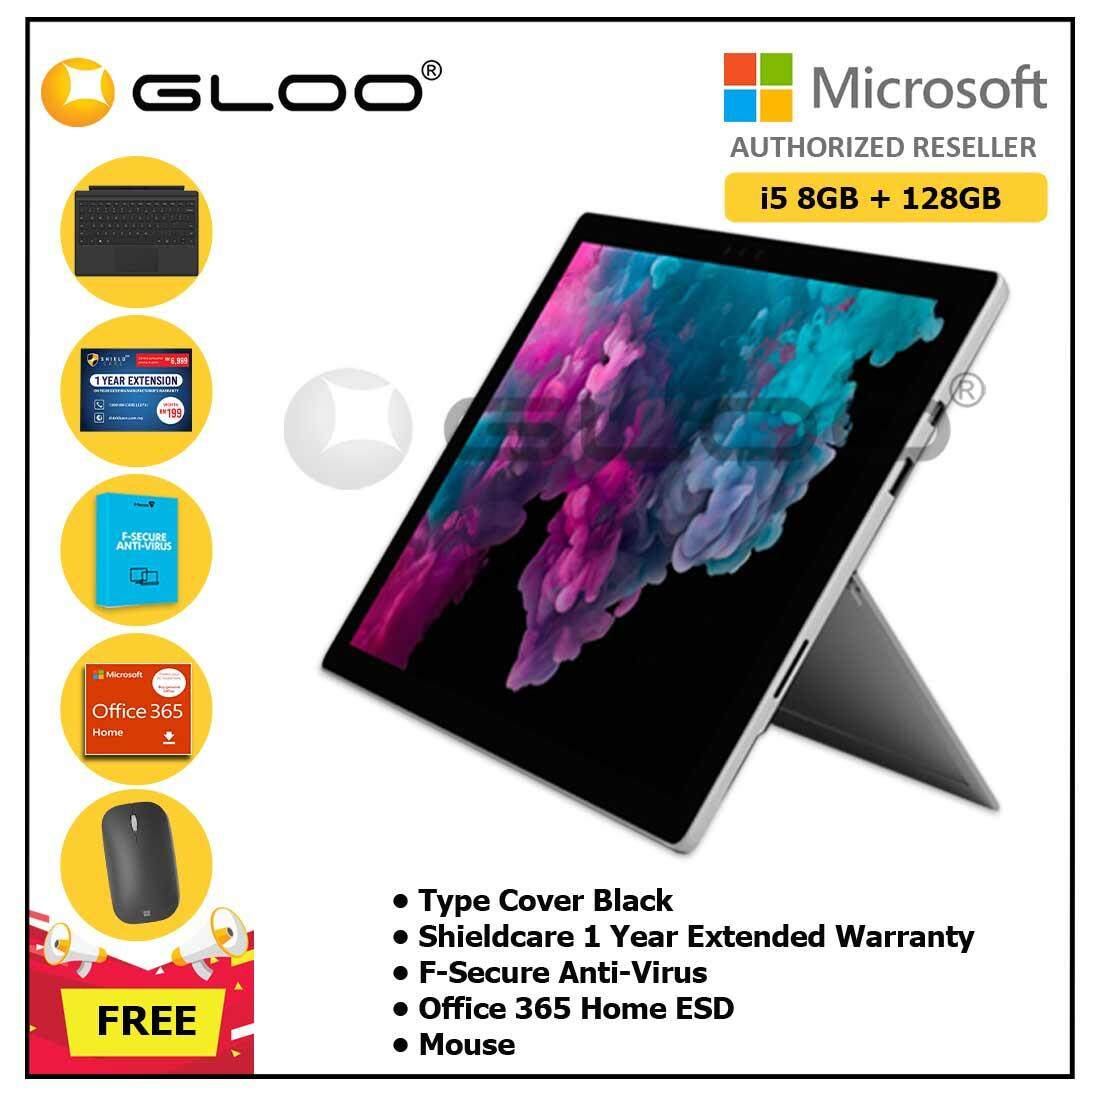 Microsoft Surface Pro 6 Core i5/8GB RAM -128GB + Type Cover Black + Office365 Home (ESD) + F-Secure Endpoint Protection + Shieldcare 1 Year Extended Warranty + Mouse